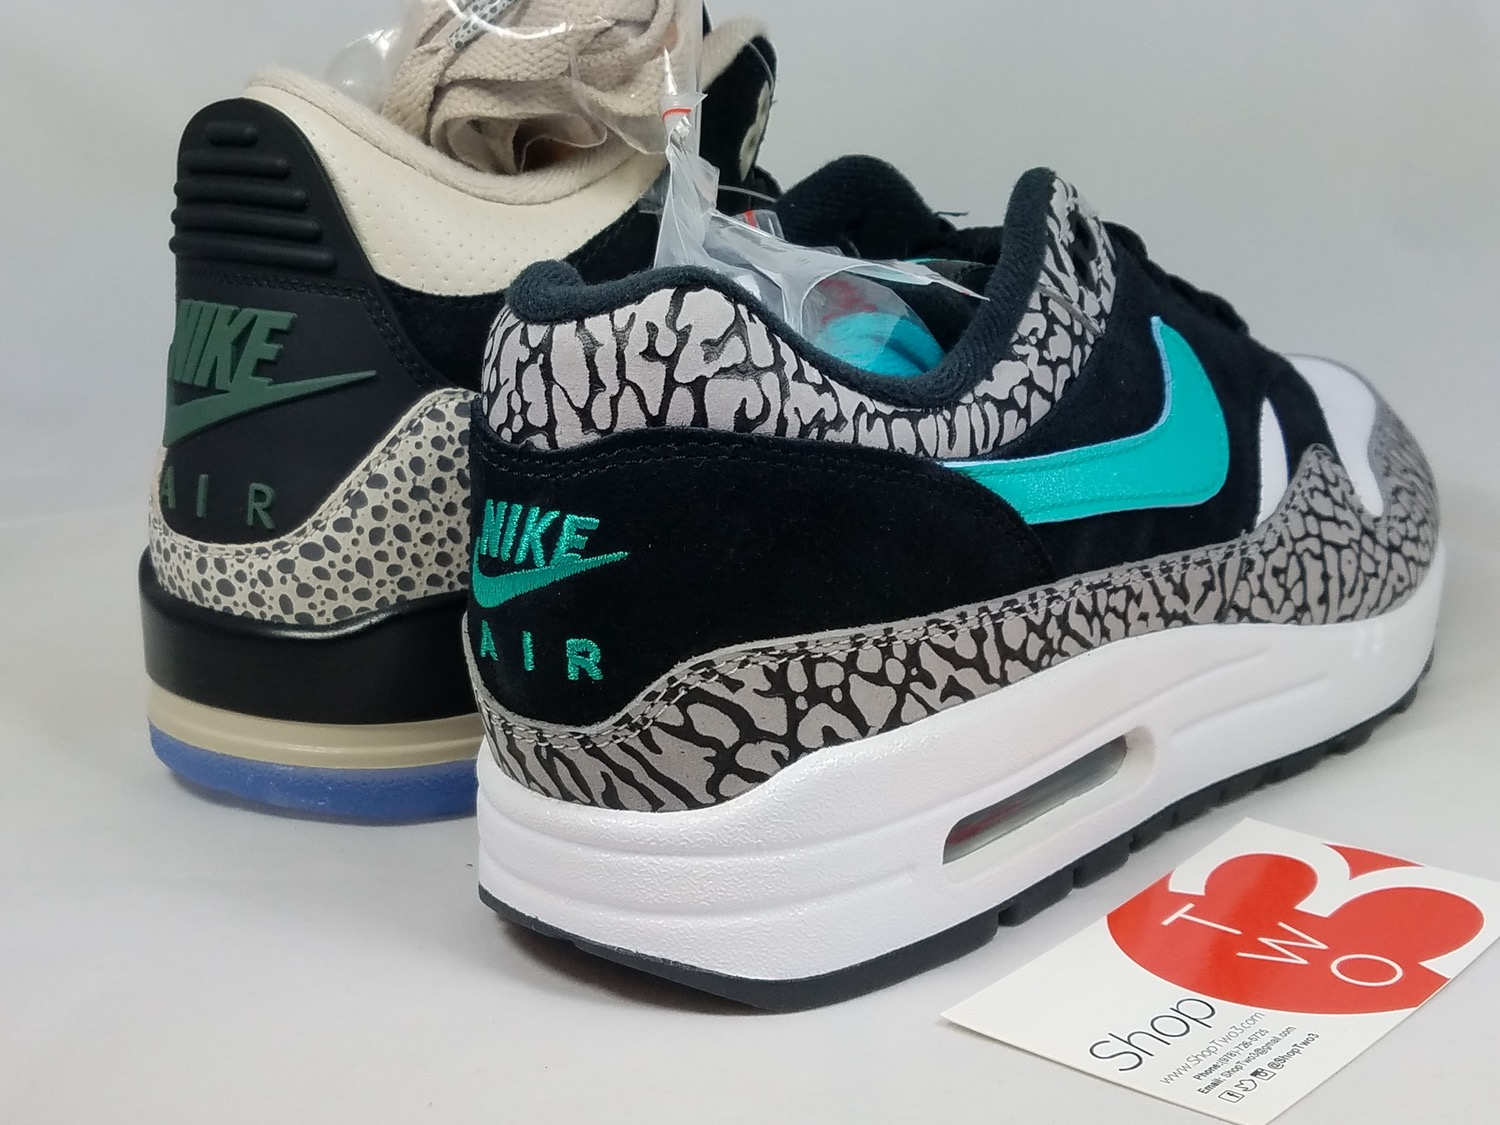 1f978124802 In case you couldn't get enough atmos x Air Jordan 3, here are some of the  latest images to check. As mentioned, this is the very first AJ3 to feature  ...